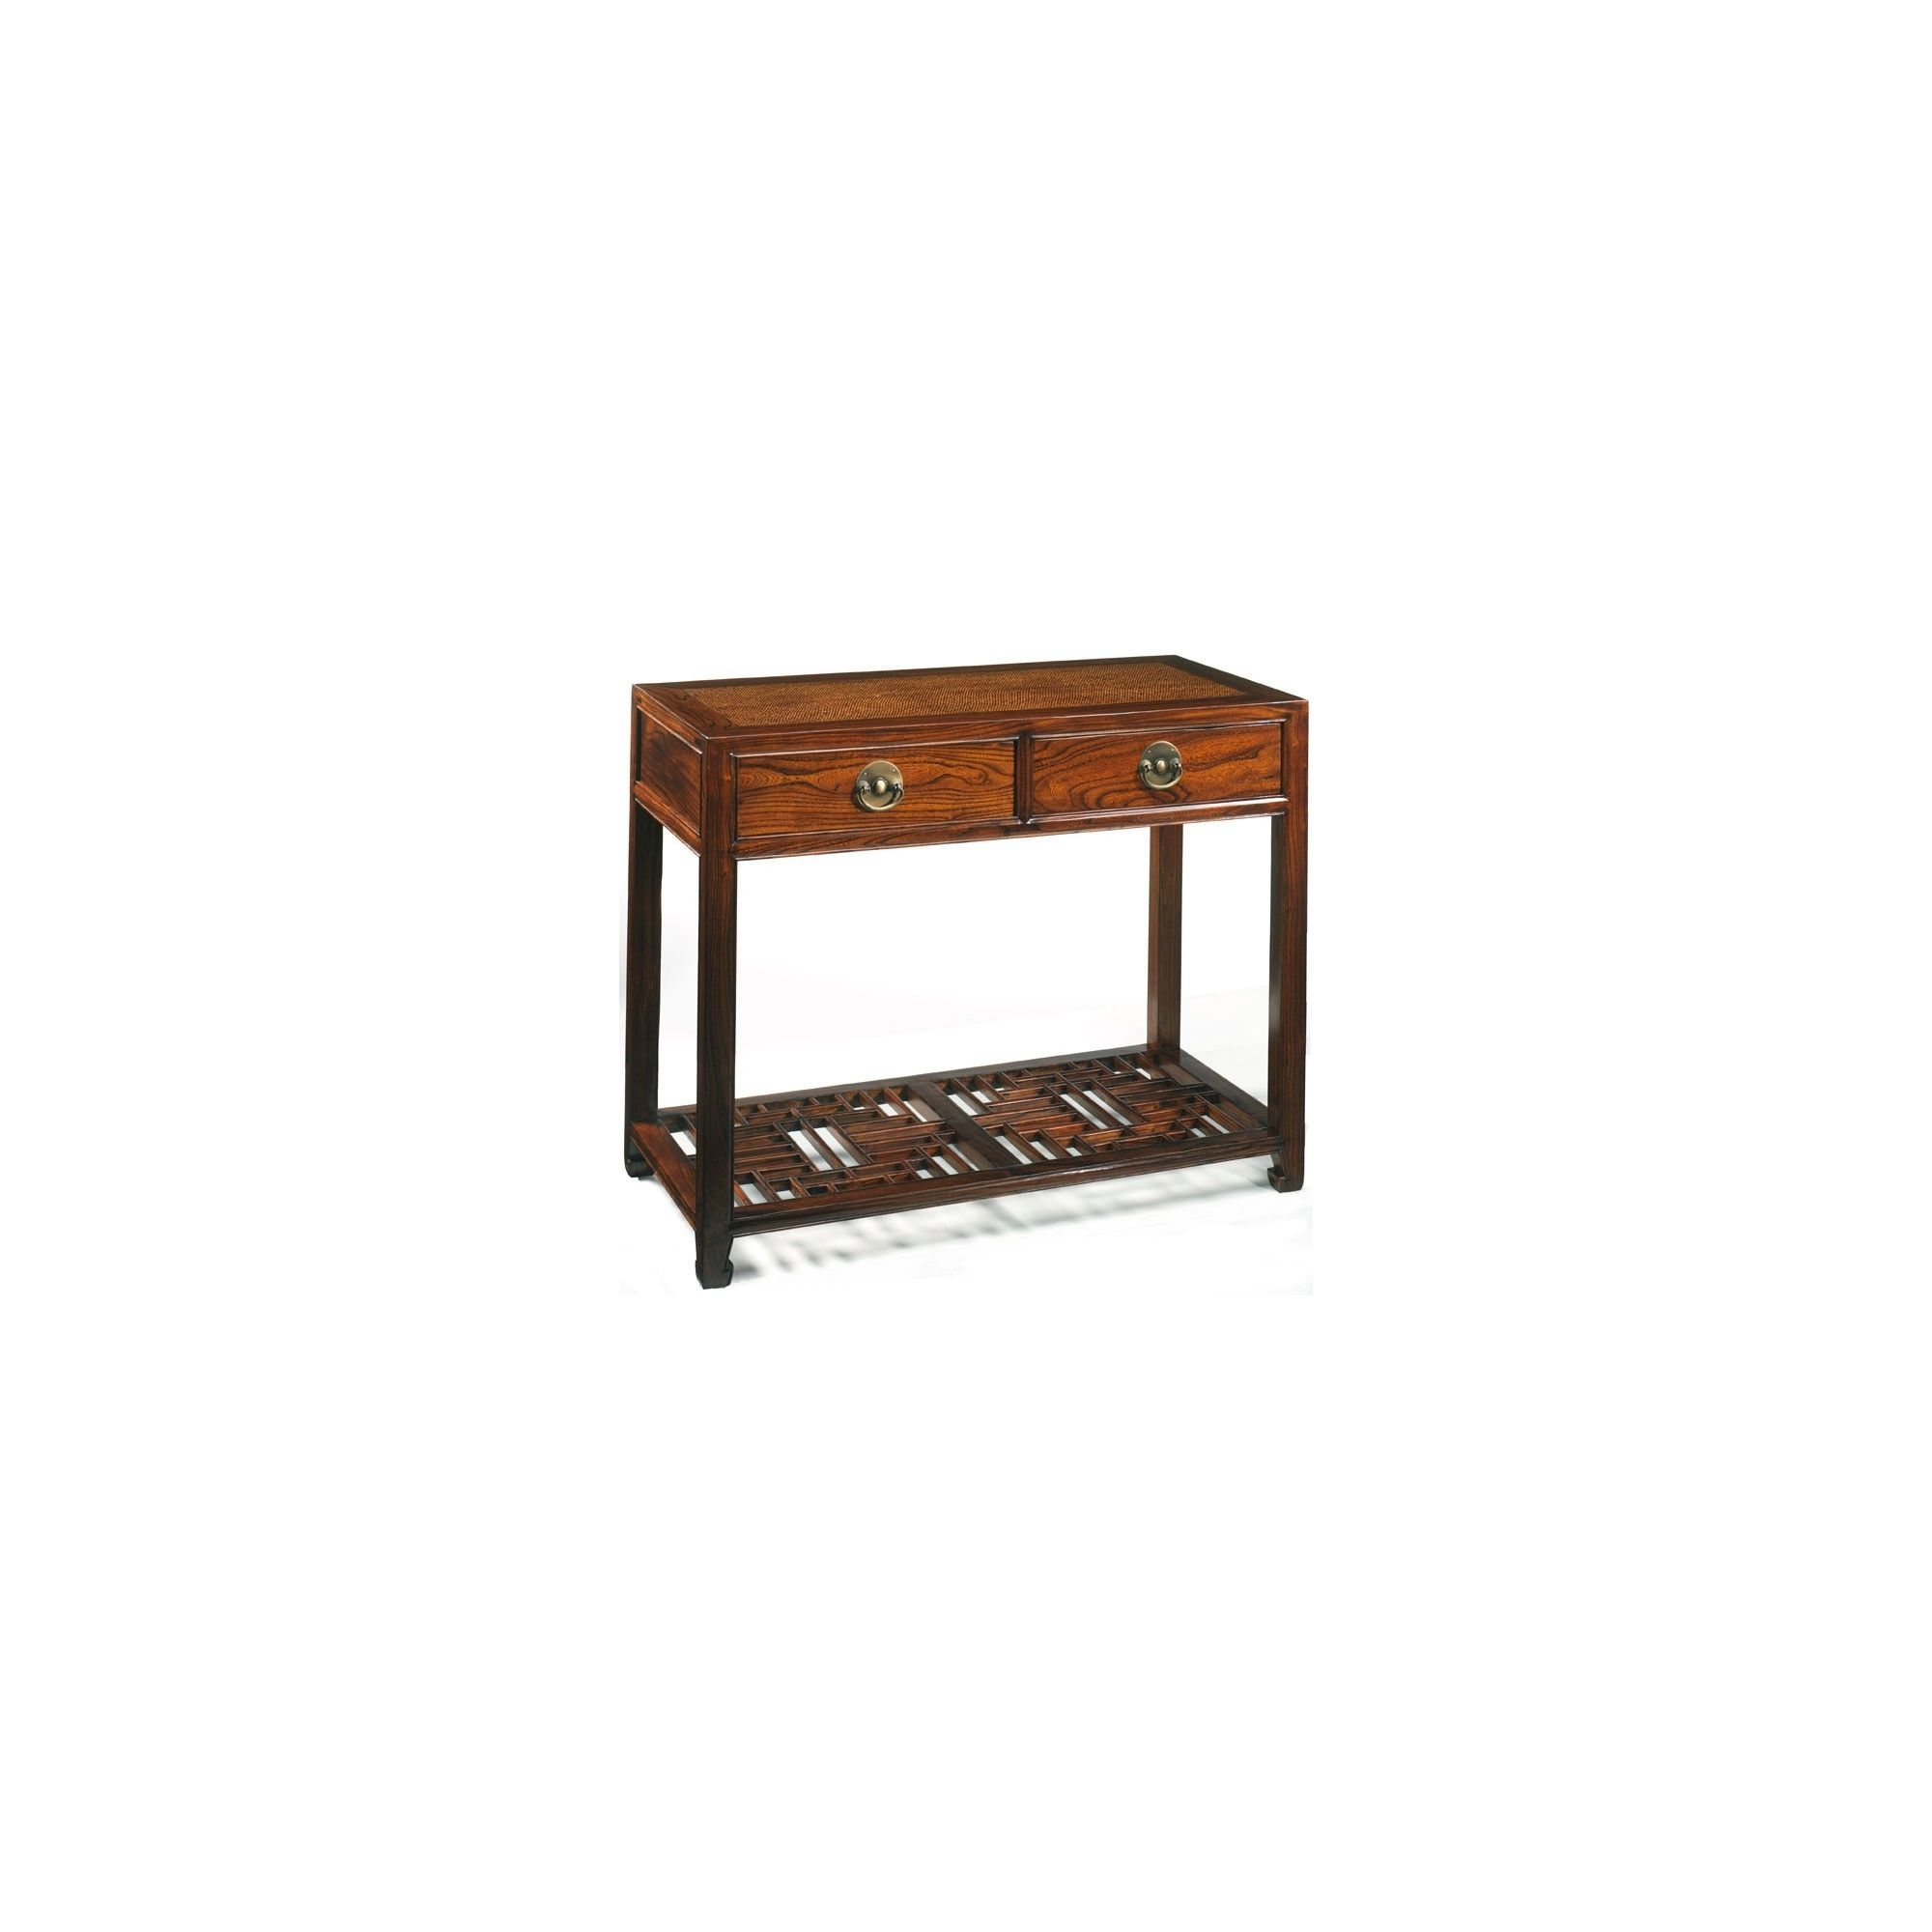 Shimu Chinese Classical Carved Console Table - Warm Elm at Tesco Direct